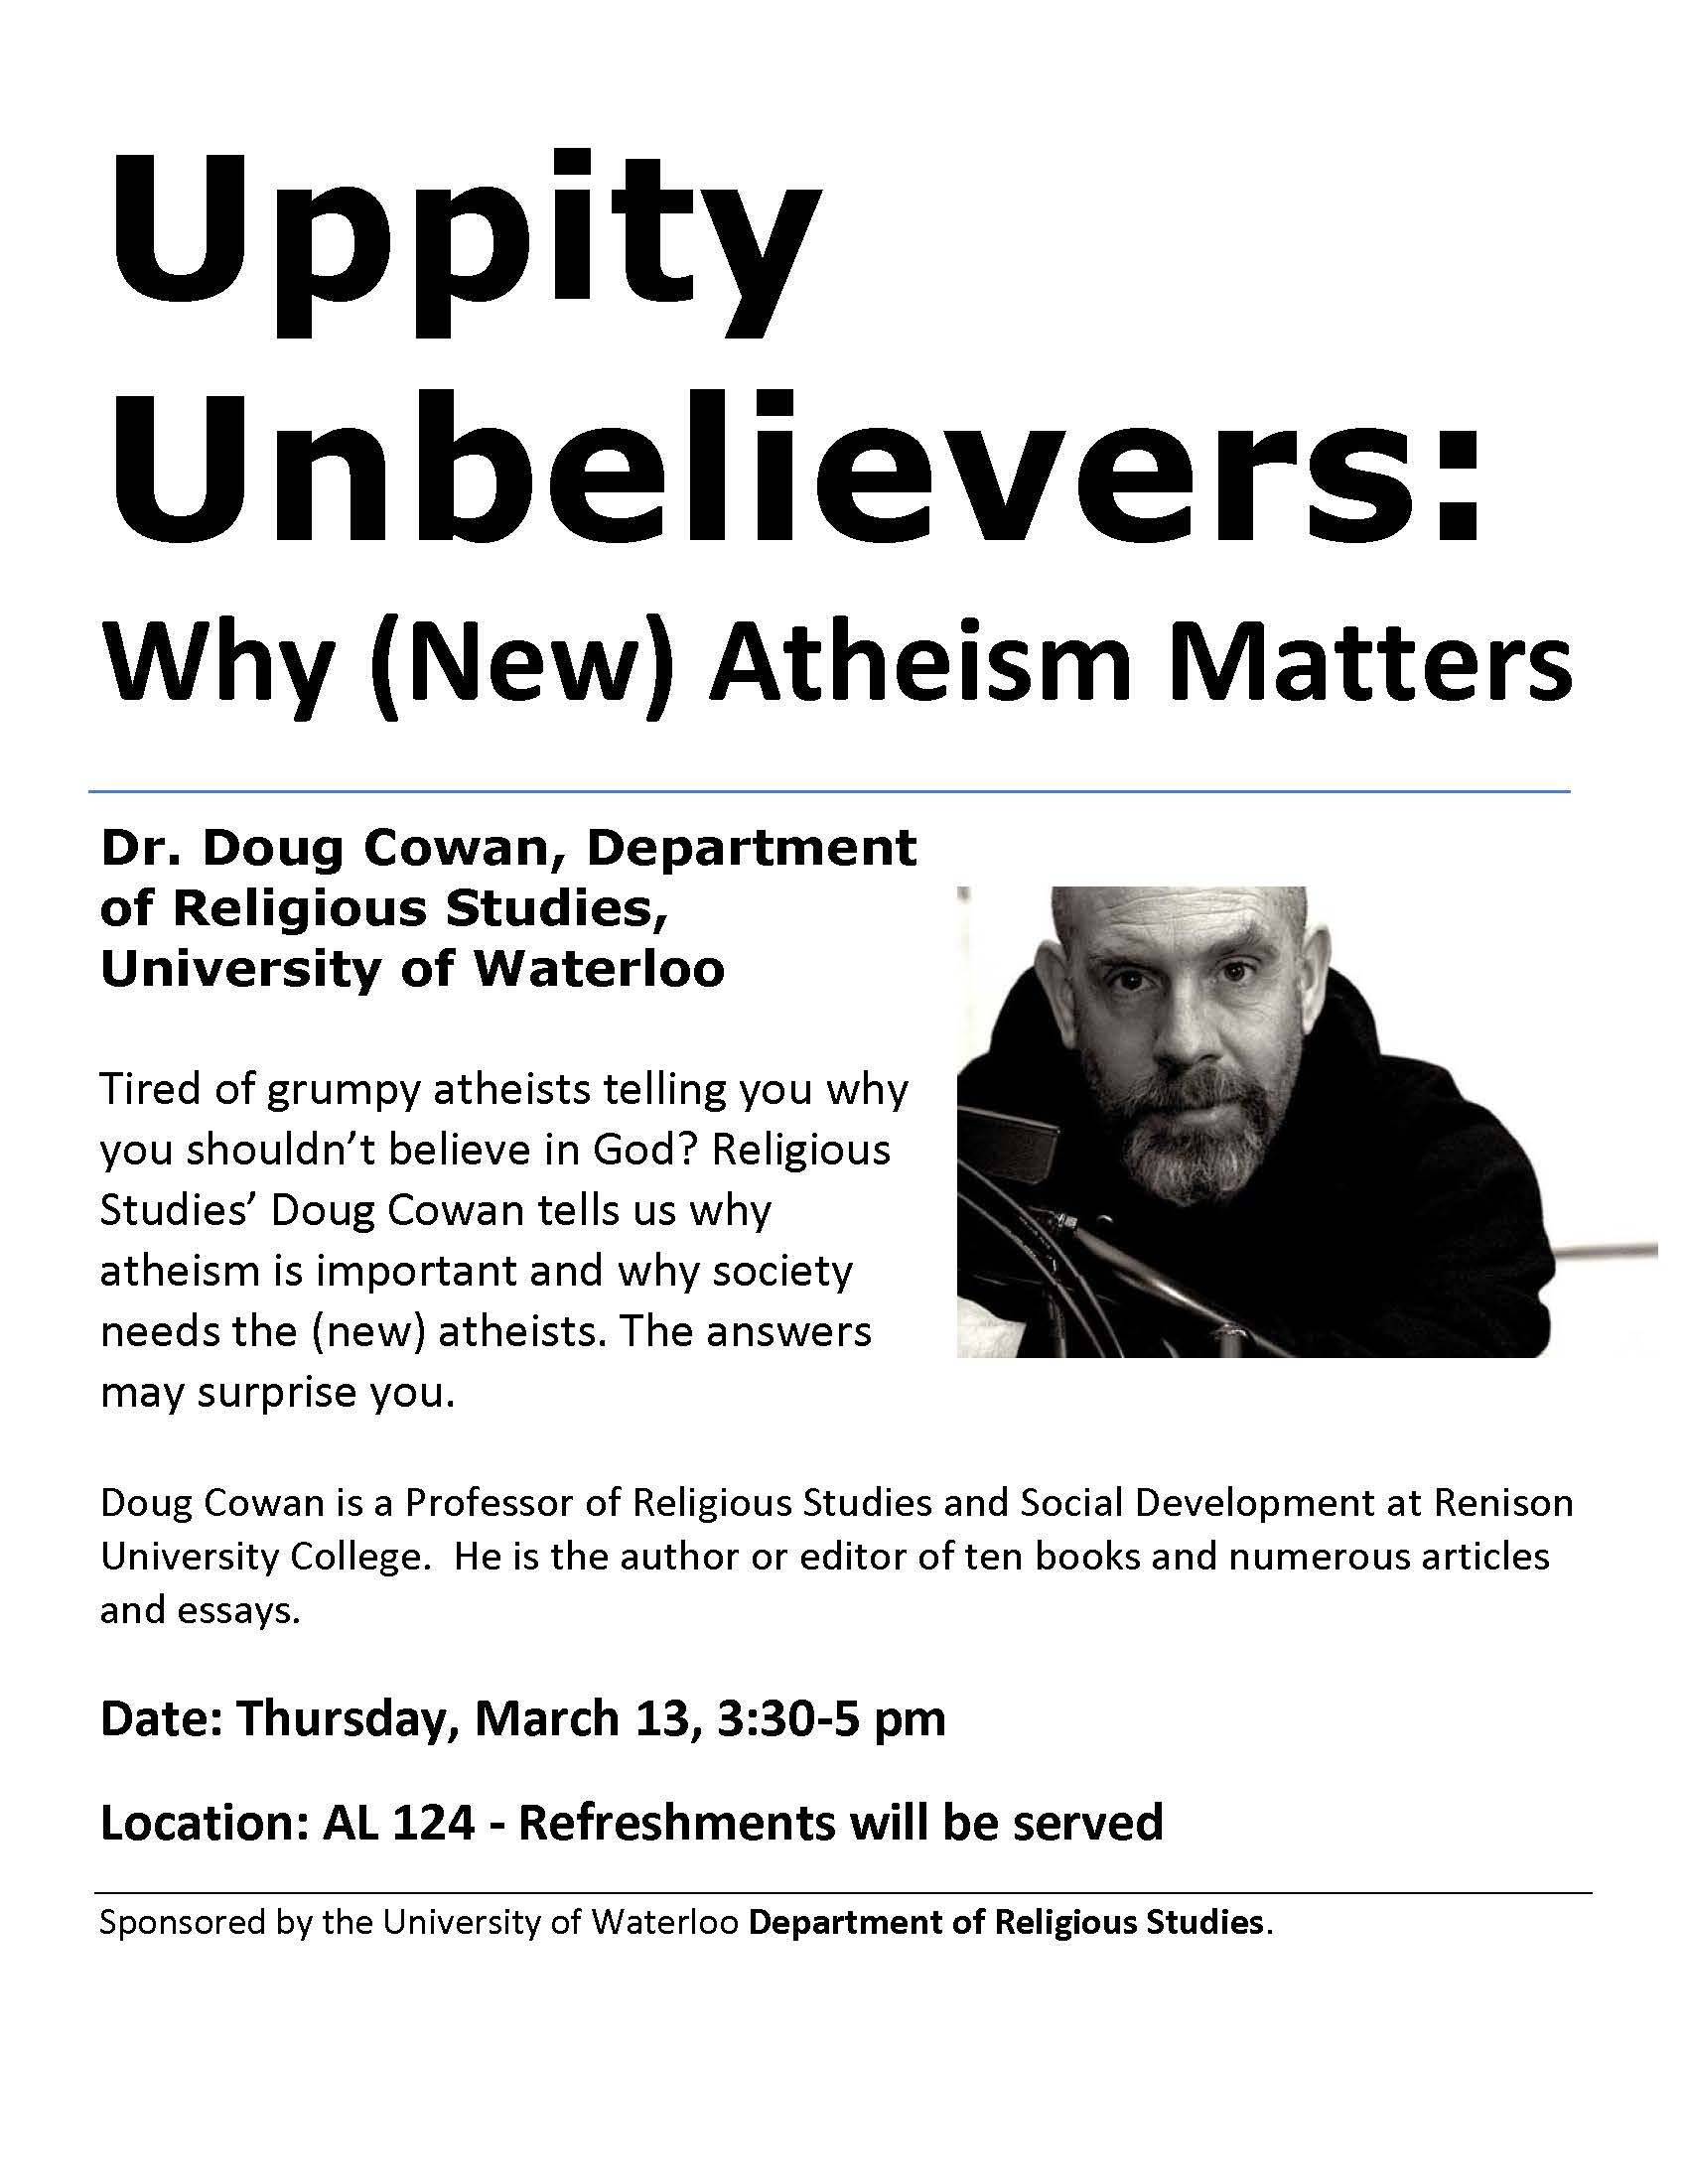 poster for Uppity Unbelievers